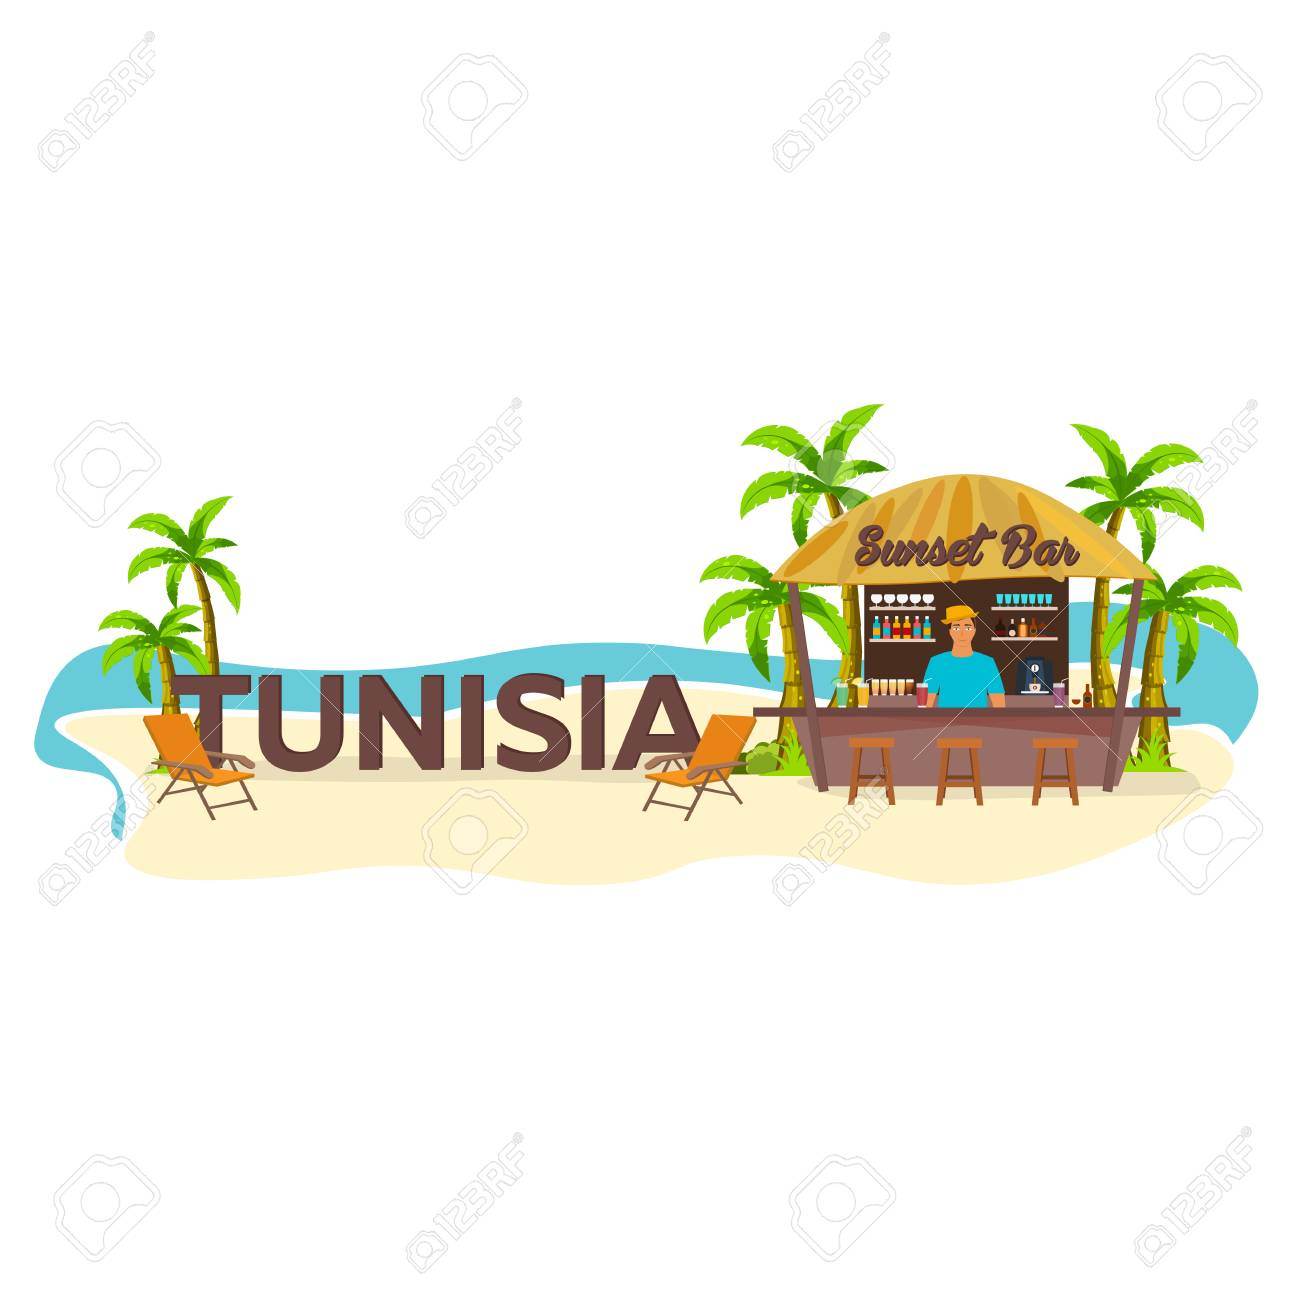 Tunisia. Travel. Palm drink summer lounge chair tropical - 72670095